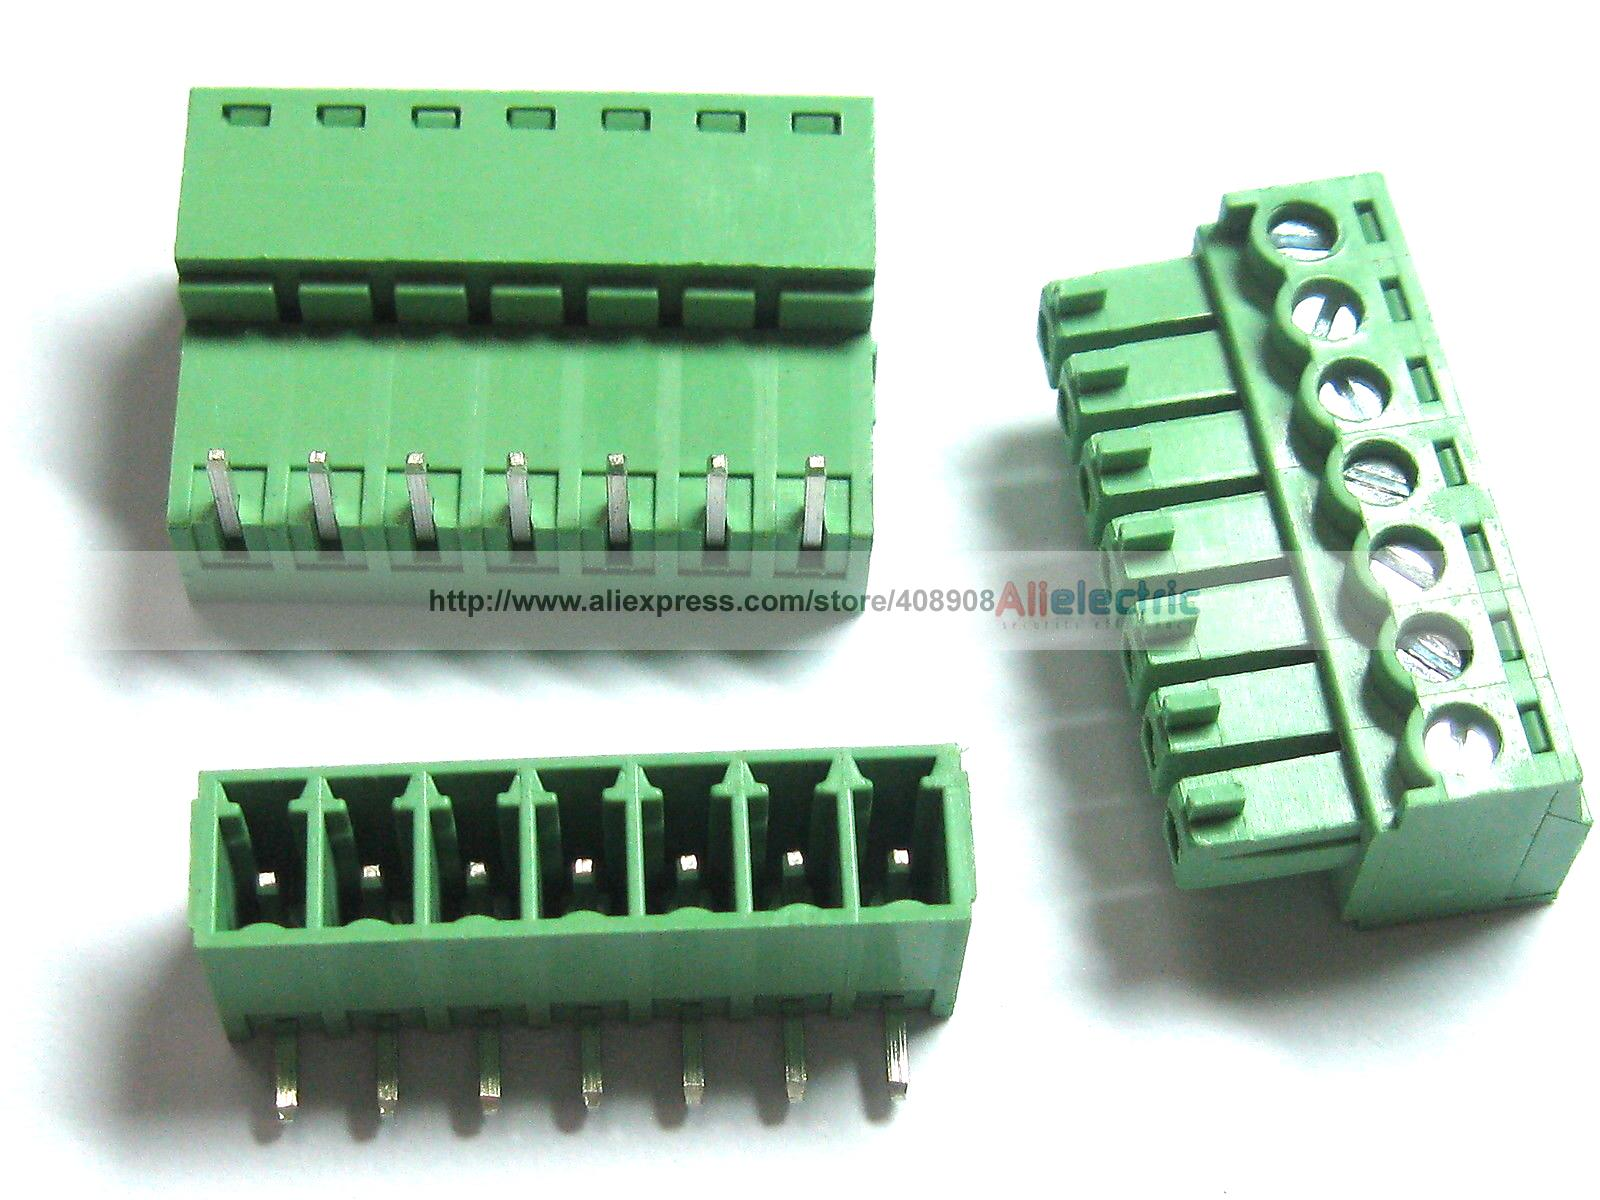 150 Pcs Screw Terminal Block Connector 3.5mm Angle 7 Pin Green Pluggable Type 30 pcs screw terminal block connector 3 81mm 12 pin green pluggable type